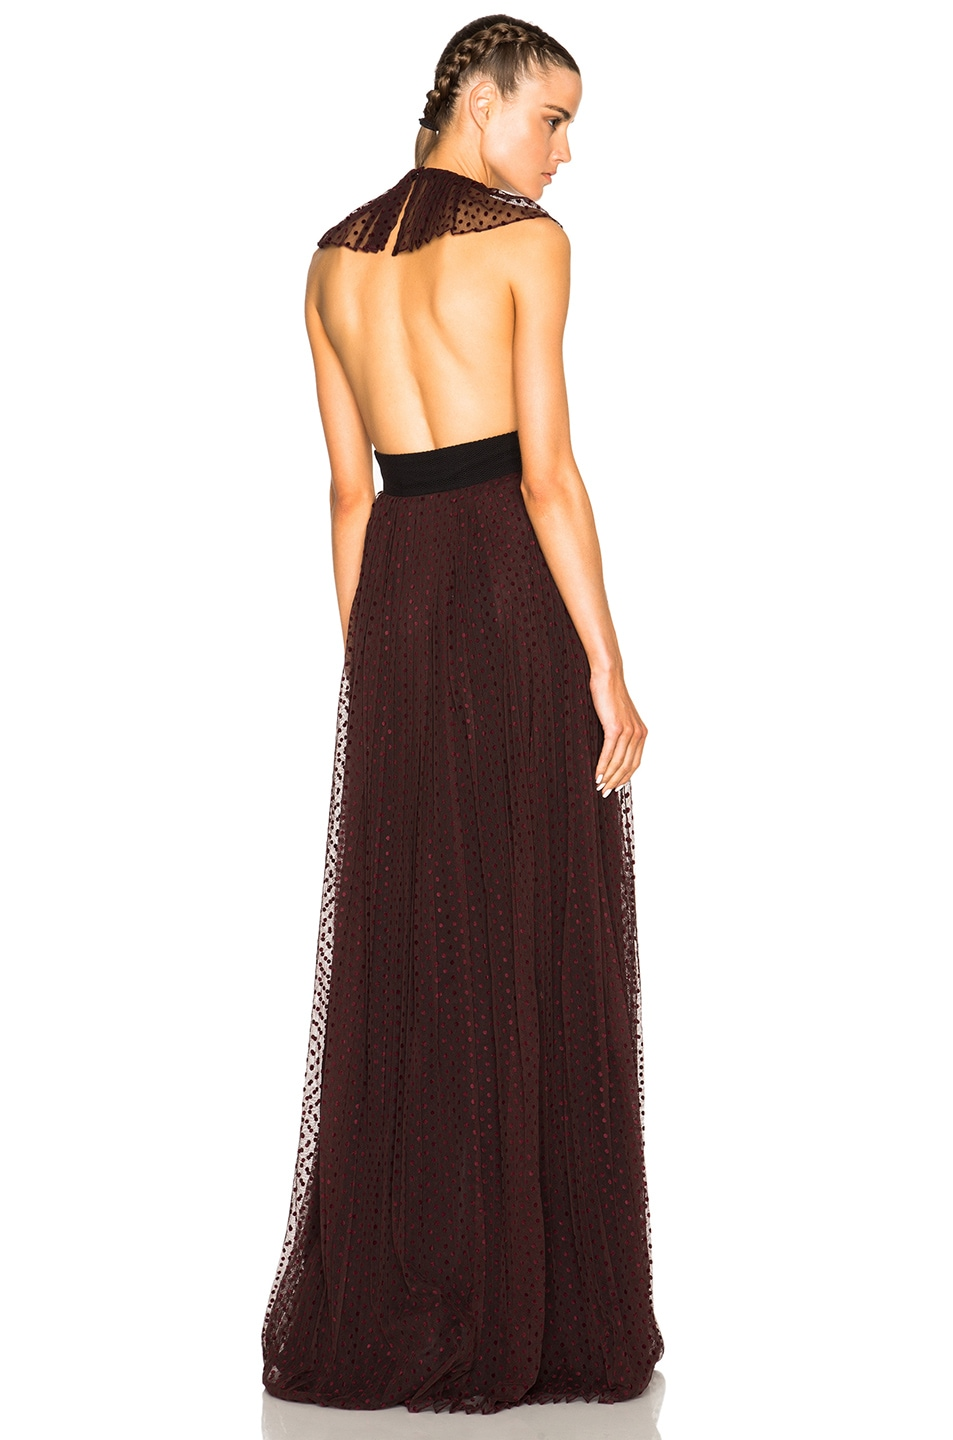 Burberry Prorsum Polka Dot Gown in Mahogany Red